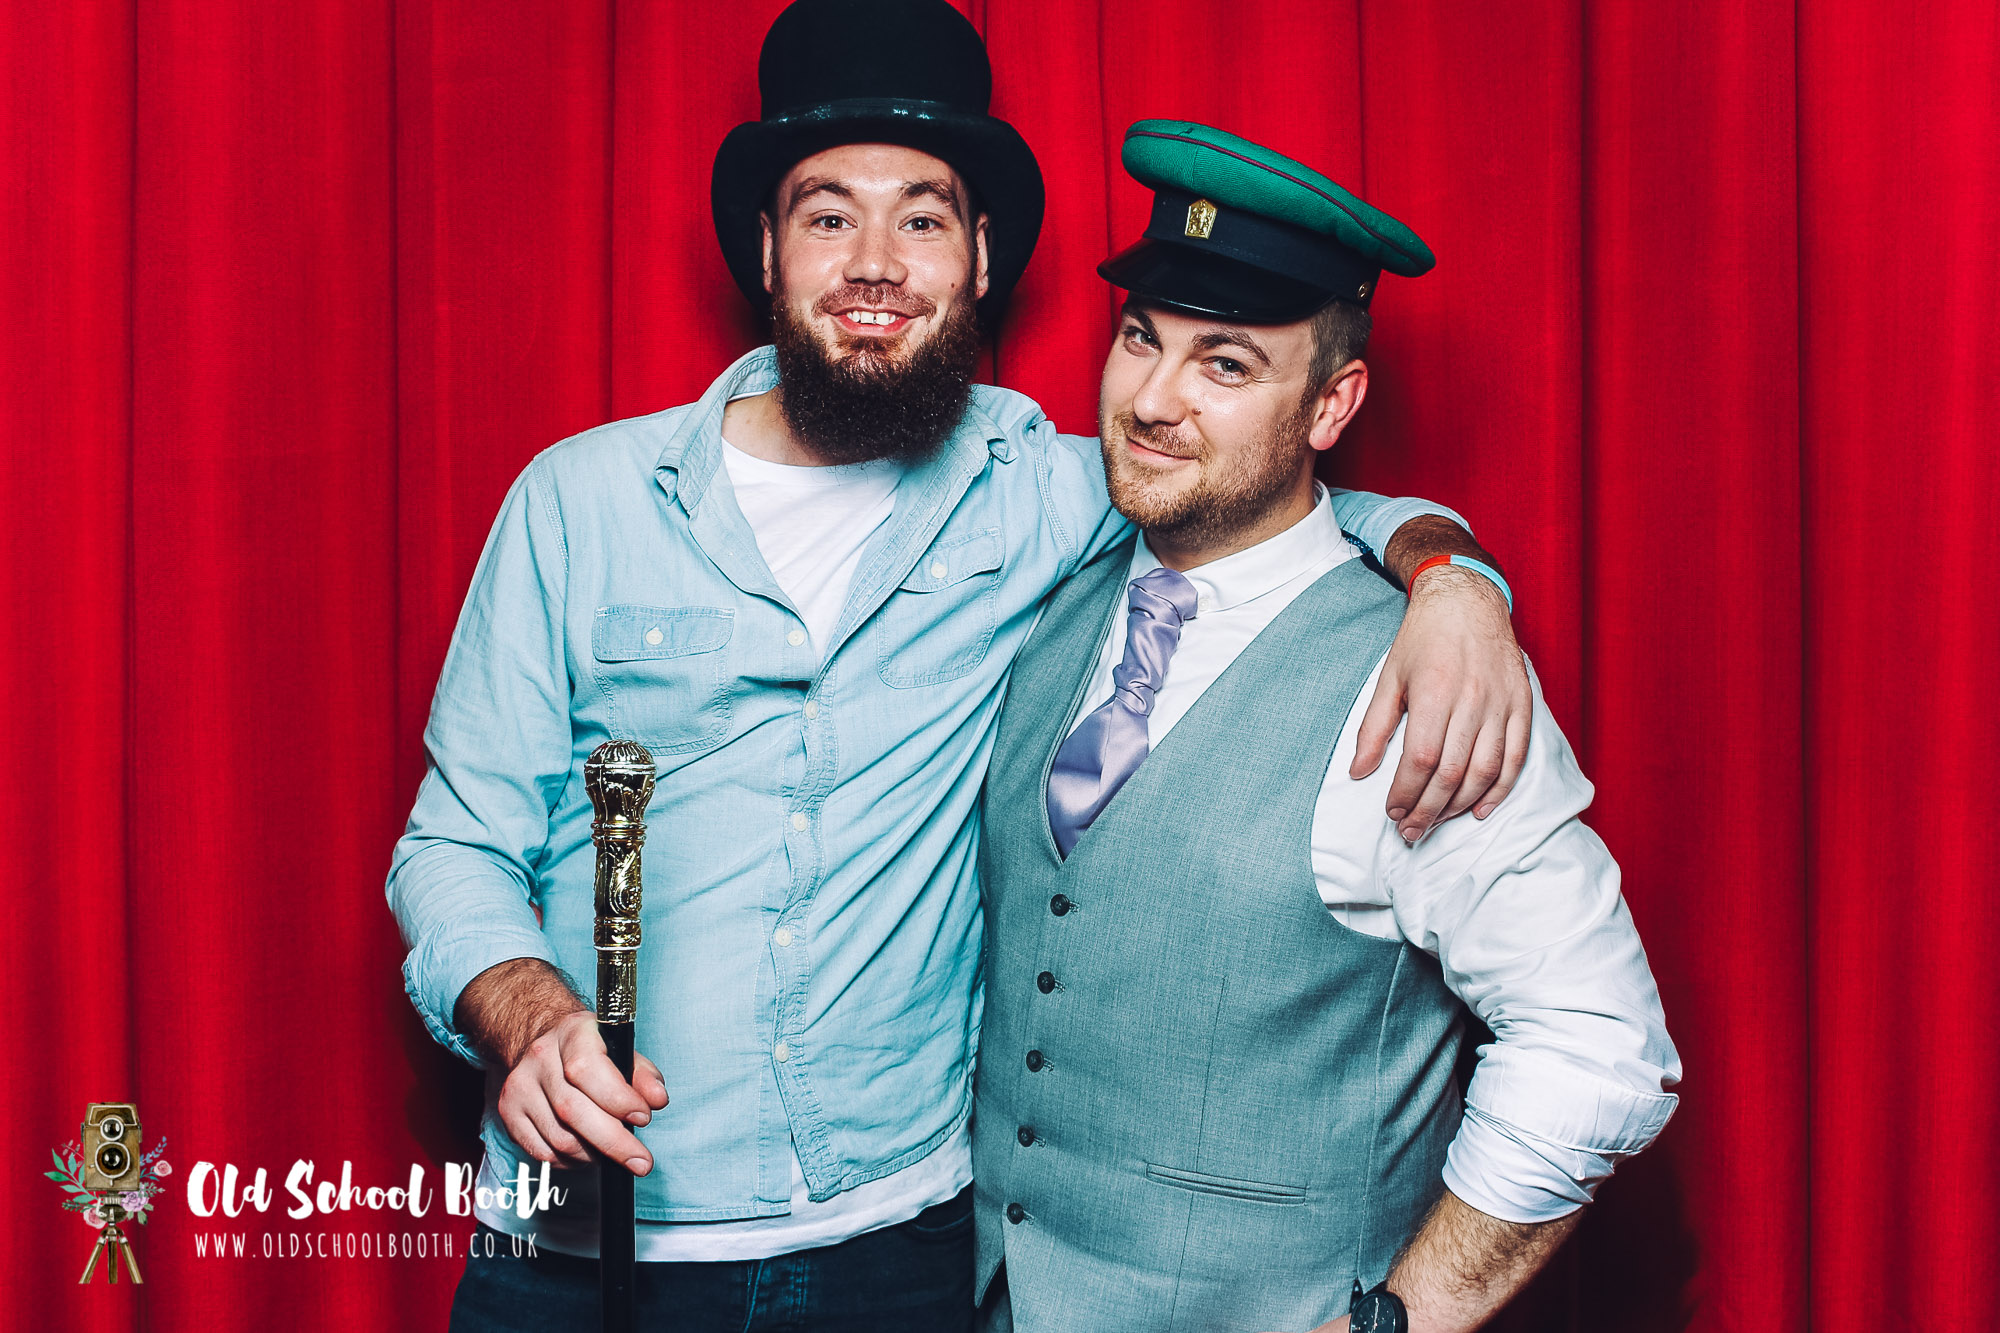 photo booth hire east midlands